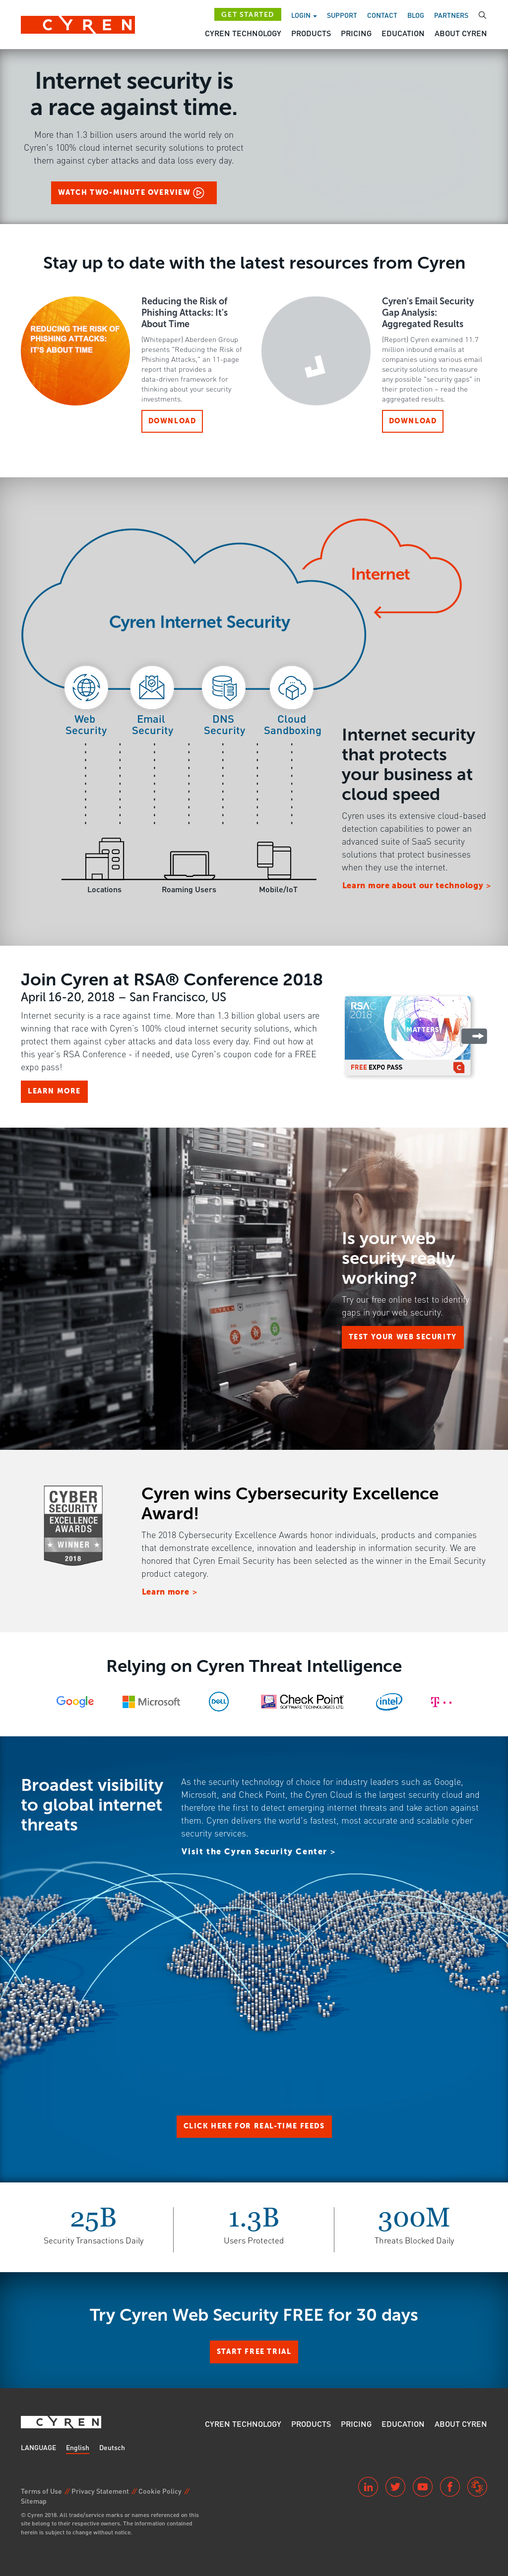 Cyren Competitors, Revenue and Employees - Owler Company Profile